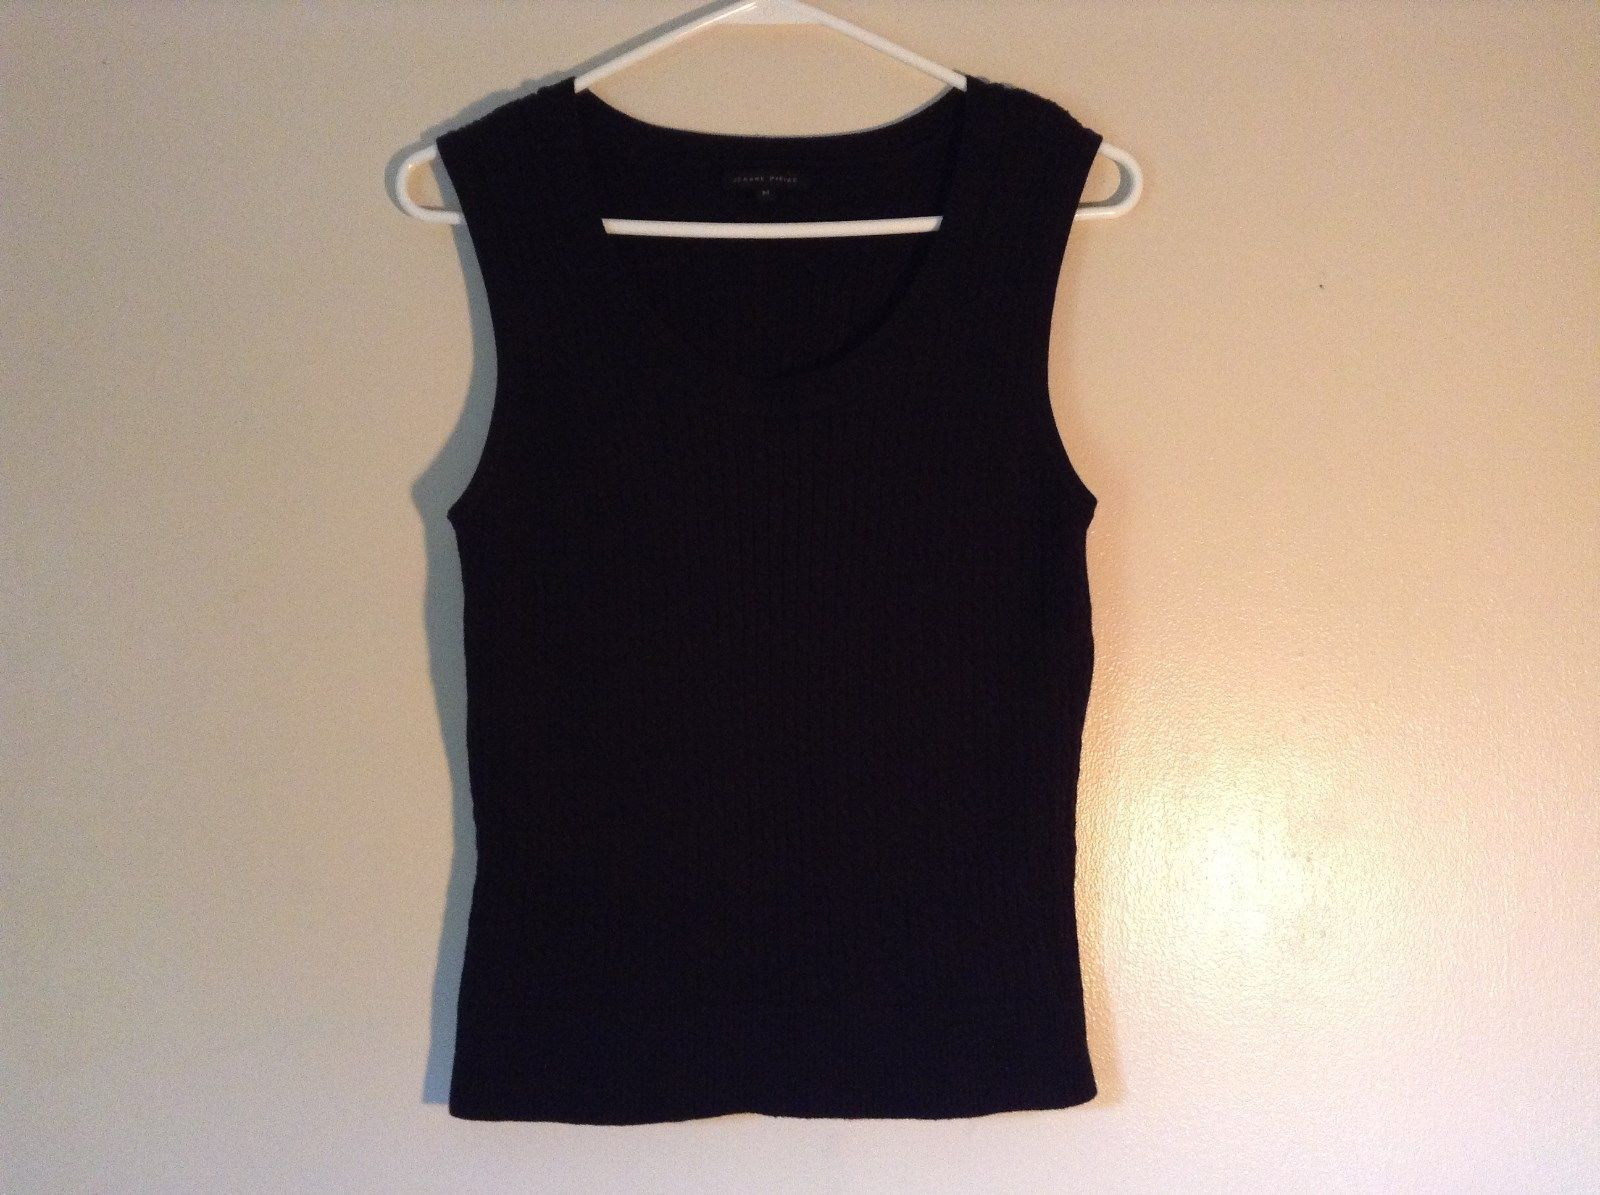 Jeanne Pierre Black Sleeveless Scooped Neck Stretchy Top Size Medium